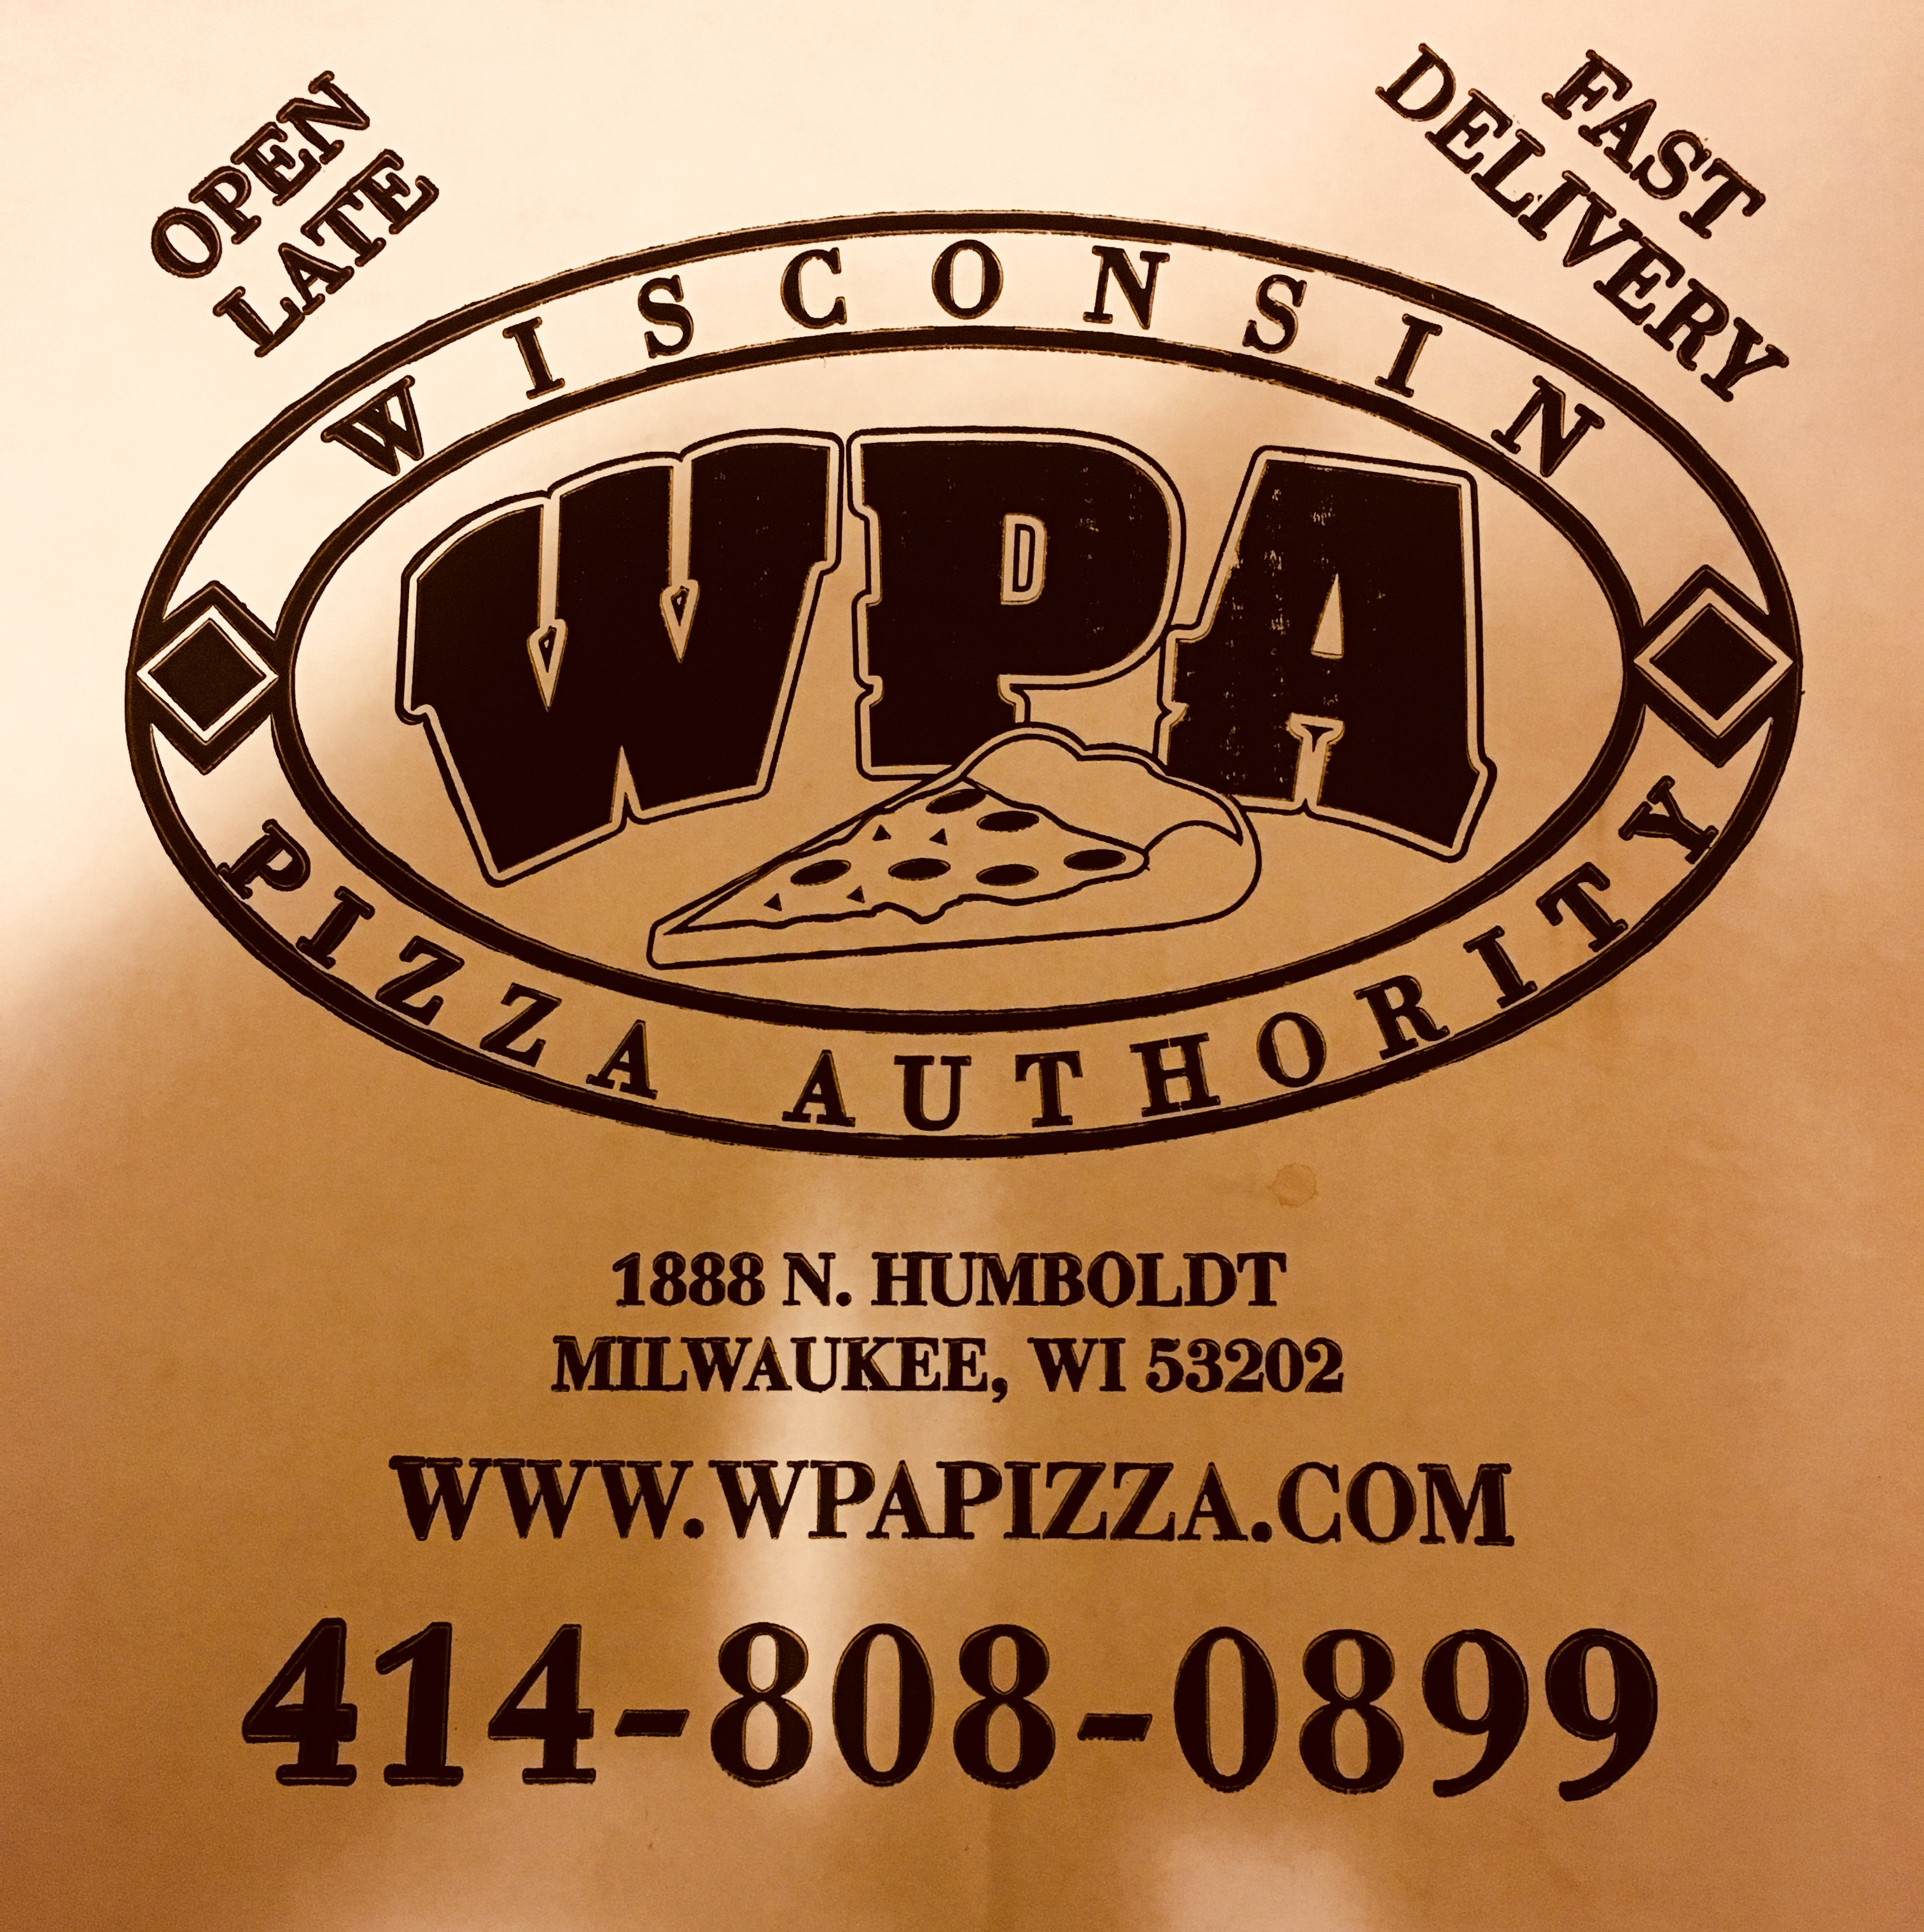 Wisconsin Pizza Authority 1888 N Humboldt Ave, Milwaukee